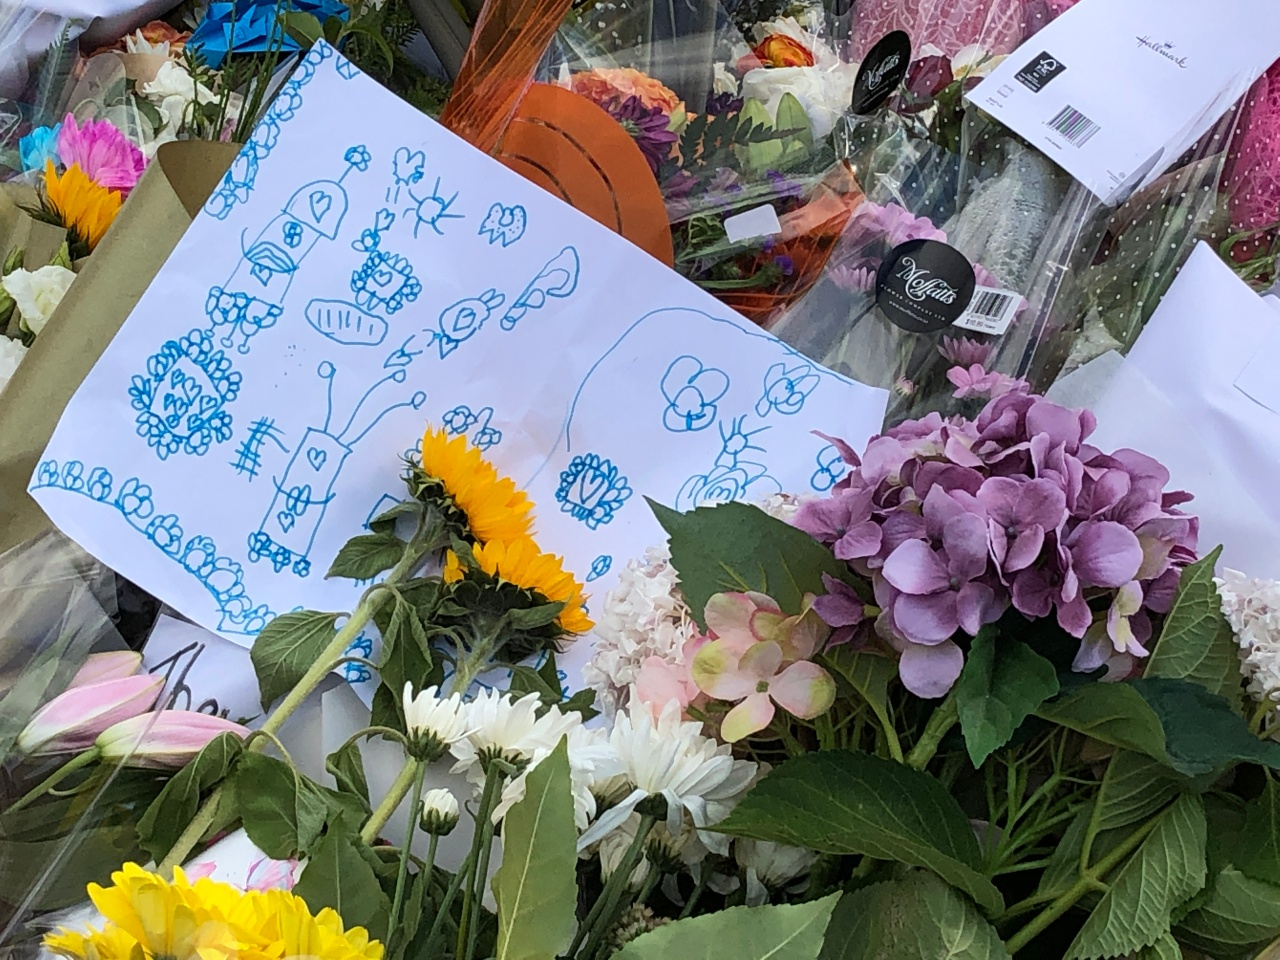 Floral tributes for the victims of the Christchurch terrorist attacks. A child's drawing sits in the middle of many bouquets.